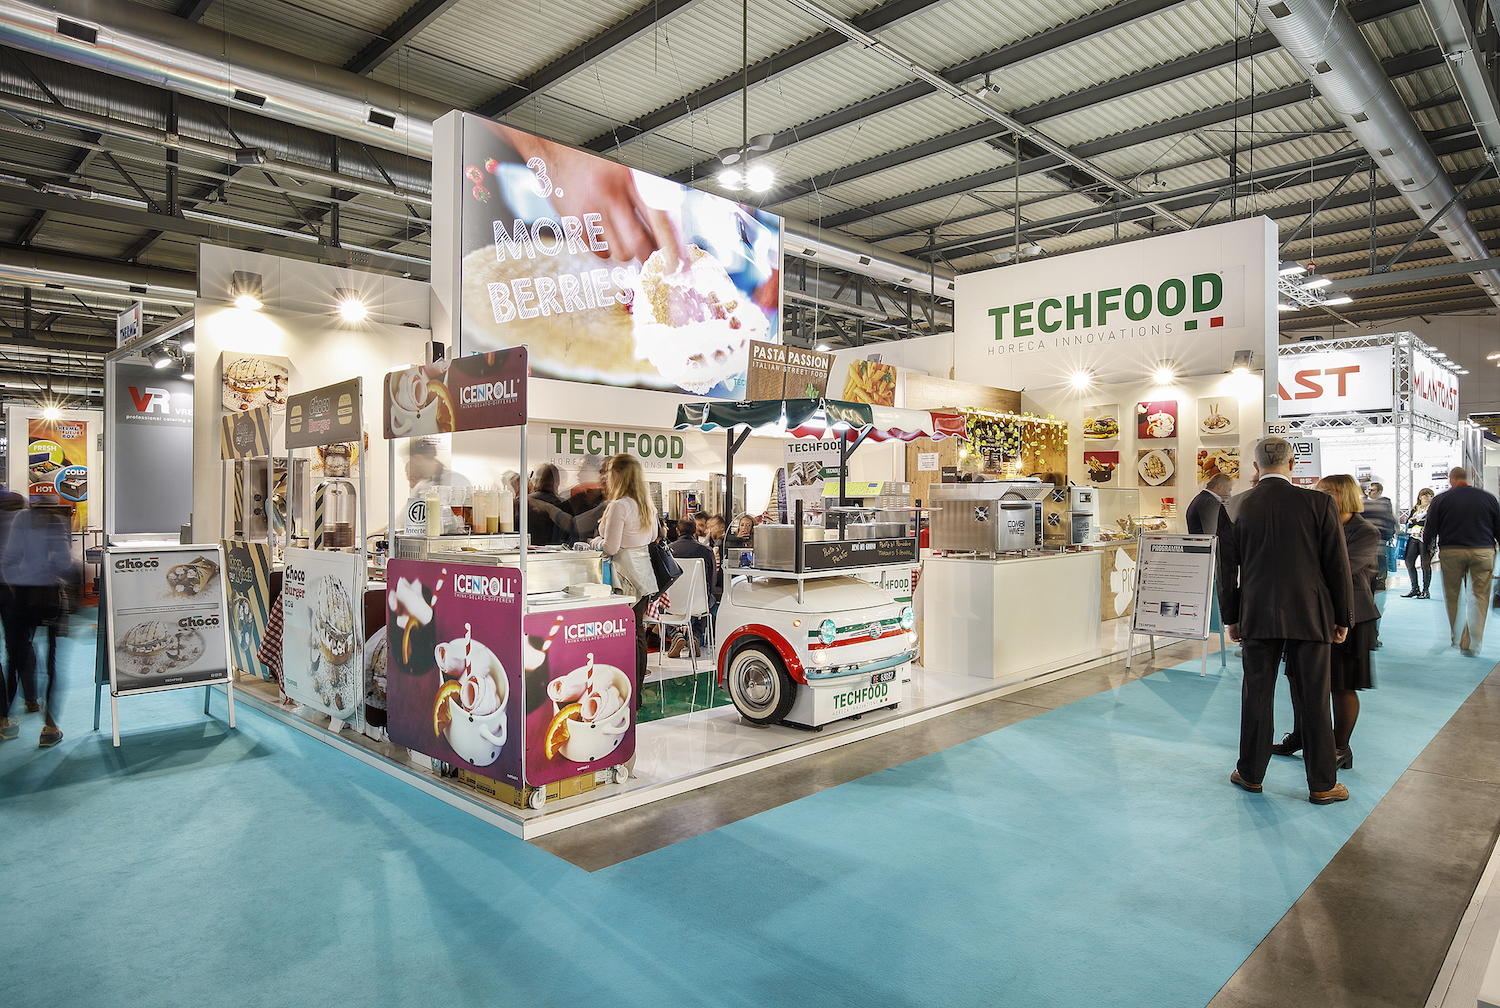 Idee per un bar innovativo: Techfood a HostMilano